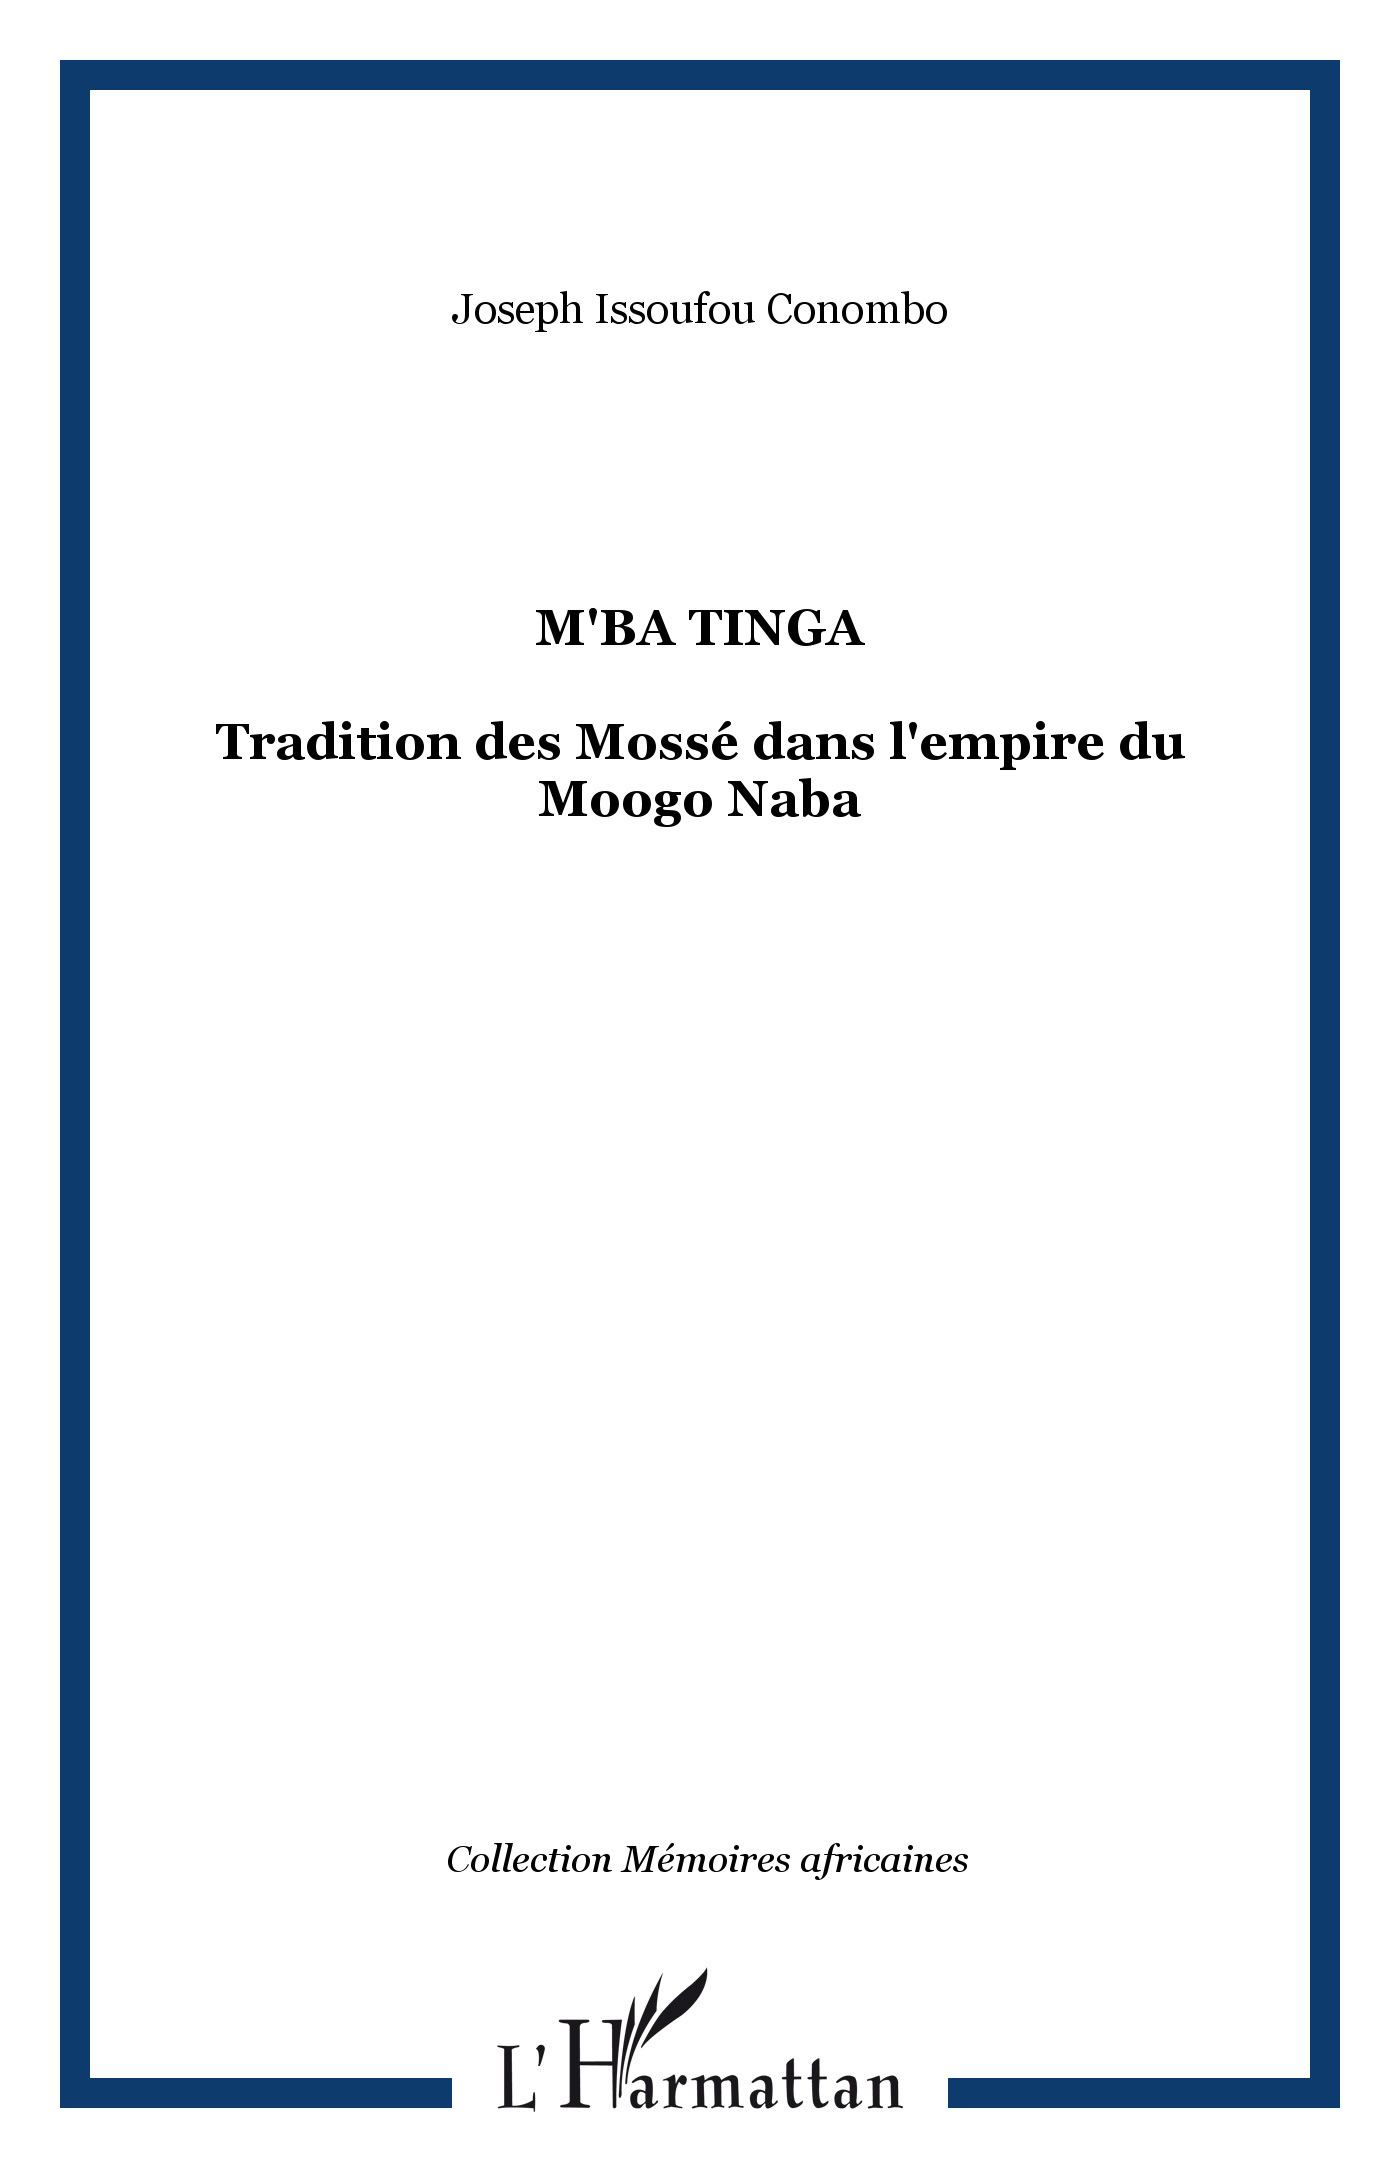 M'BA TINGA / TRADITIONS  DES MOSSES DANS L'EMPIRE...